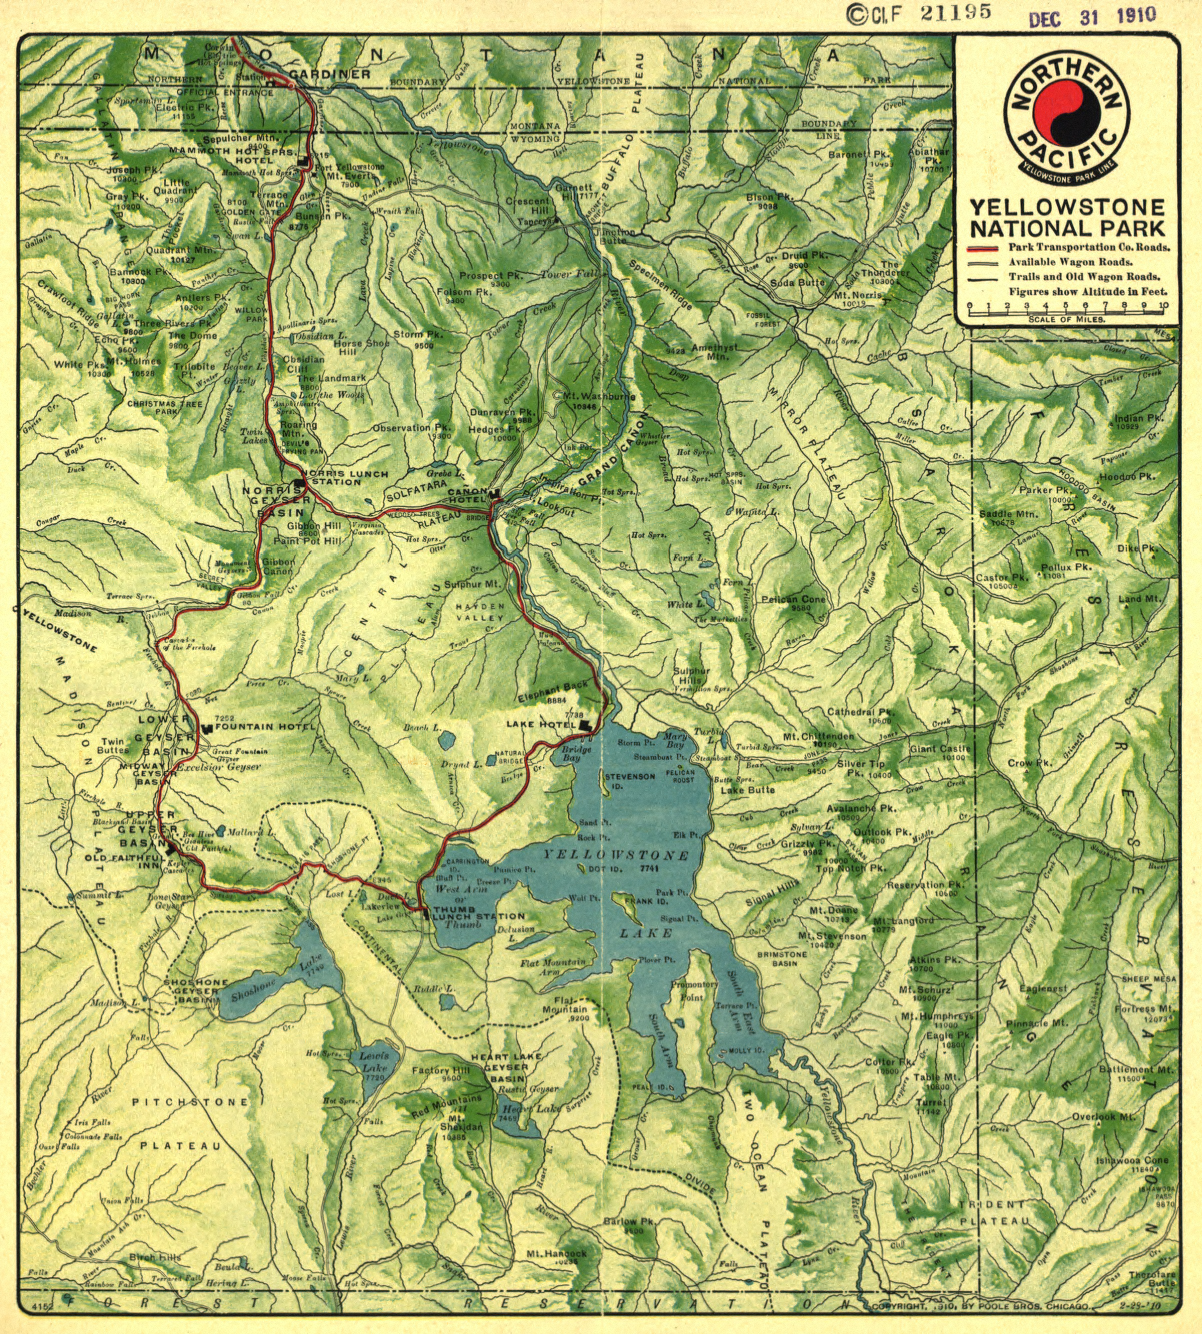 Yellowstone National Park 1910 Northern Pacific Map from the Library of Congress Collection